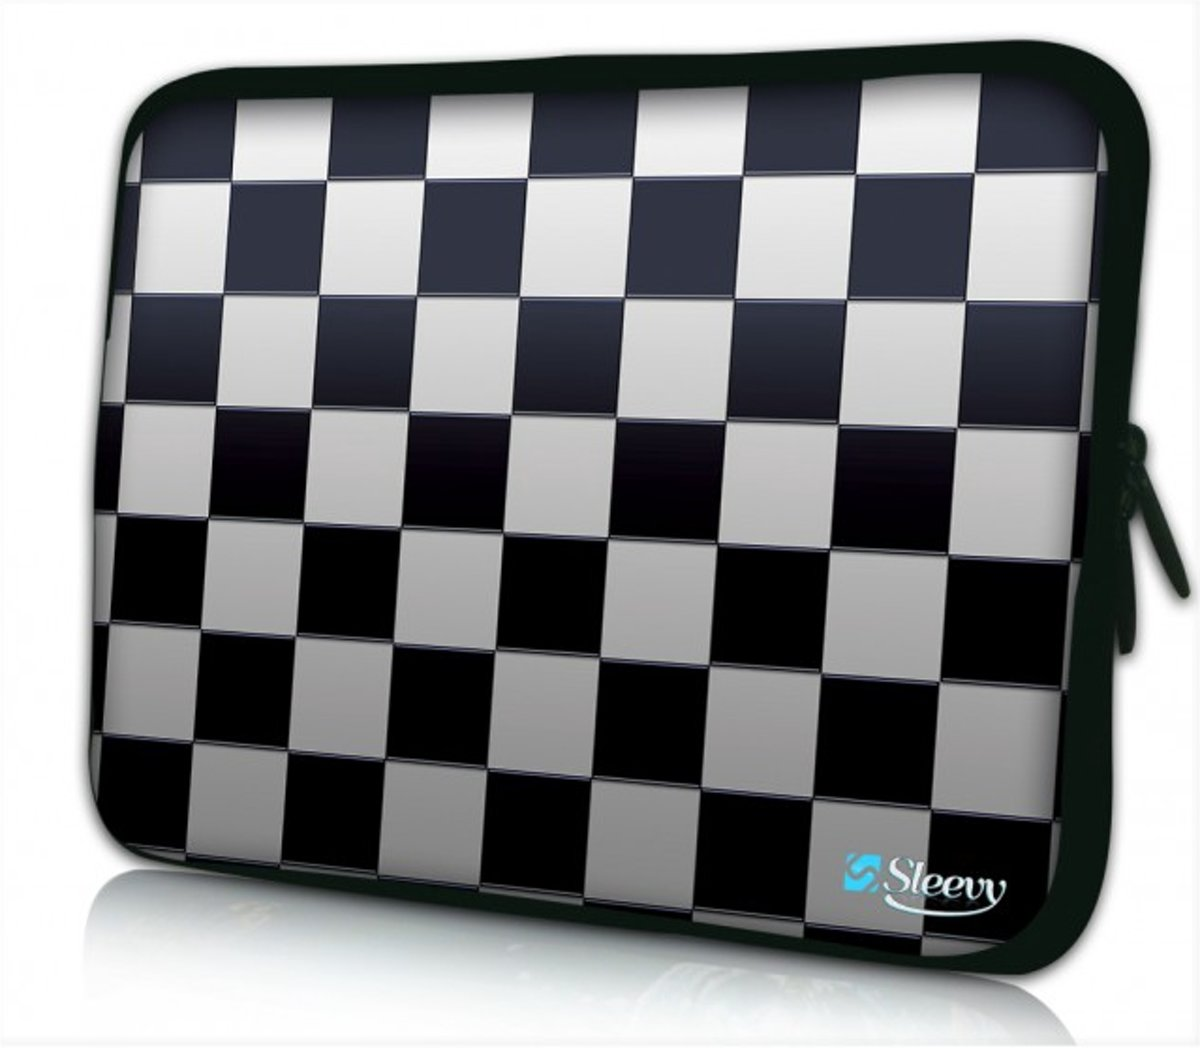 Sleevy 13.3 laptophoes schaakbord - Laptop sleeve - Macbook hoes - beschermhoes